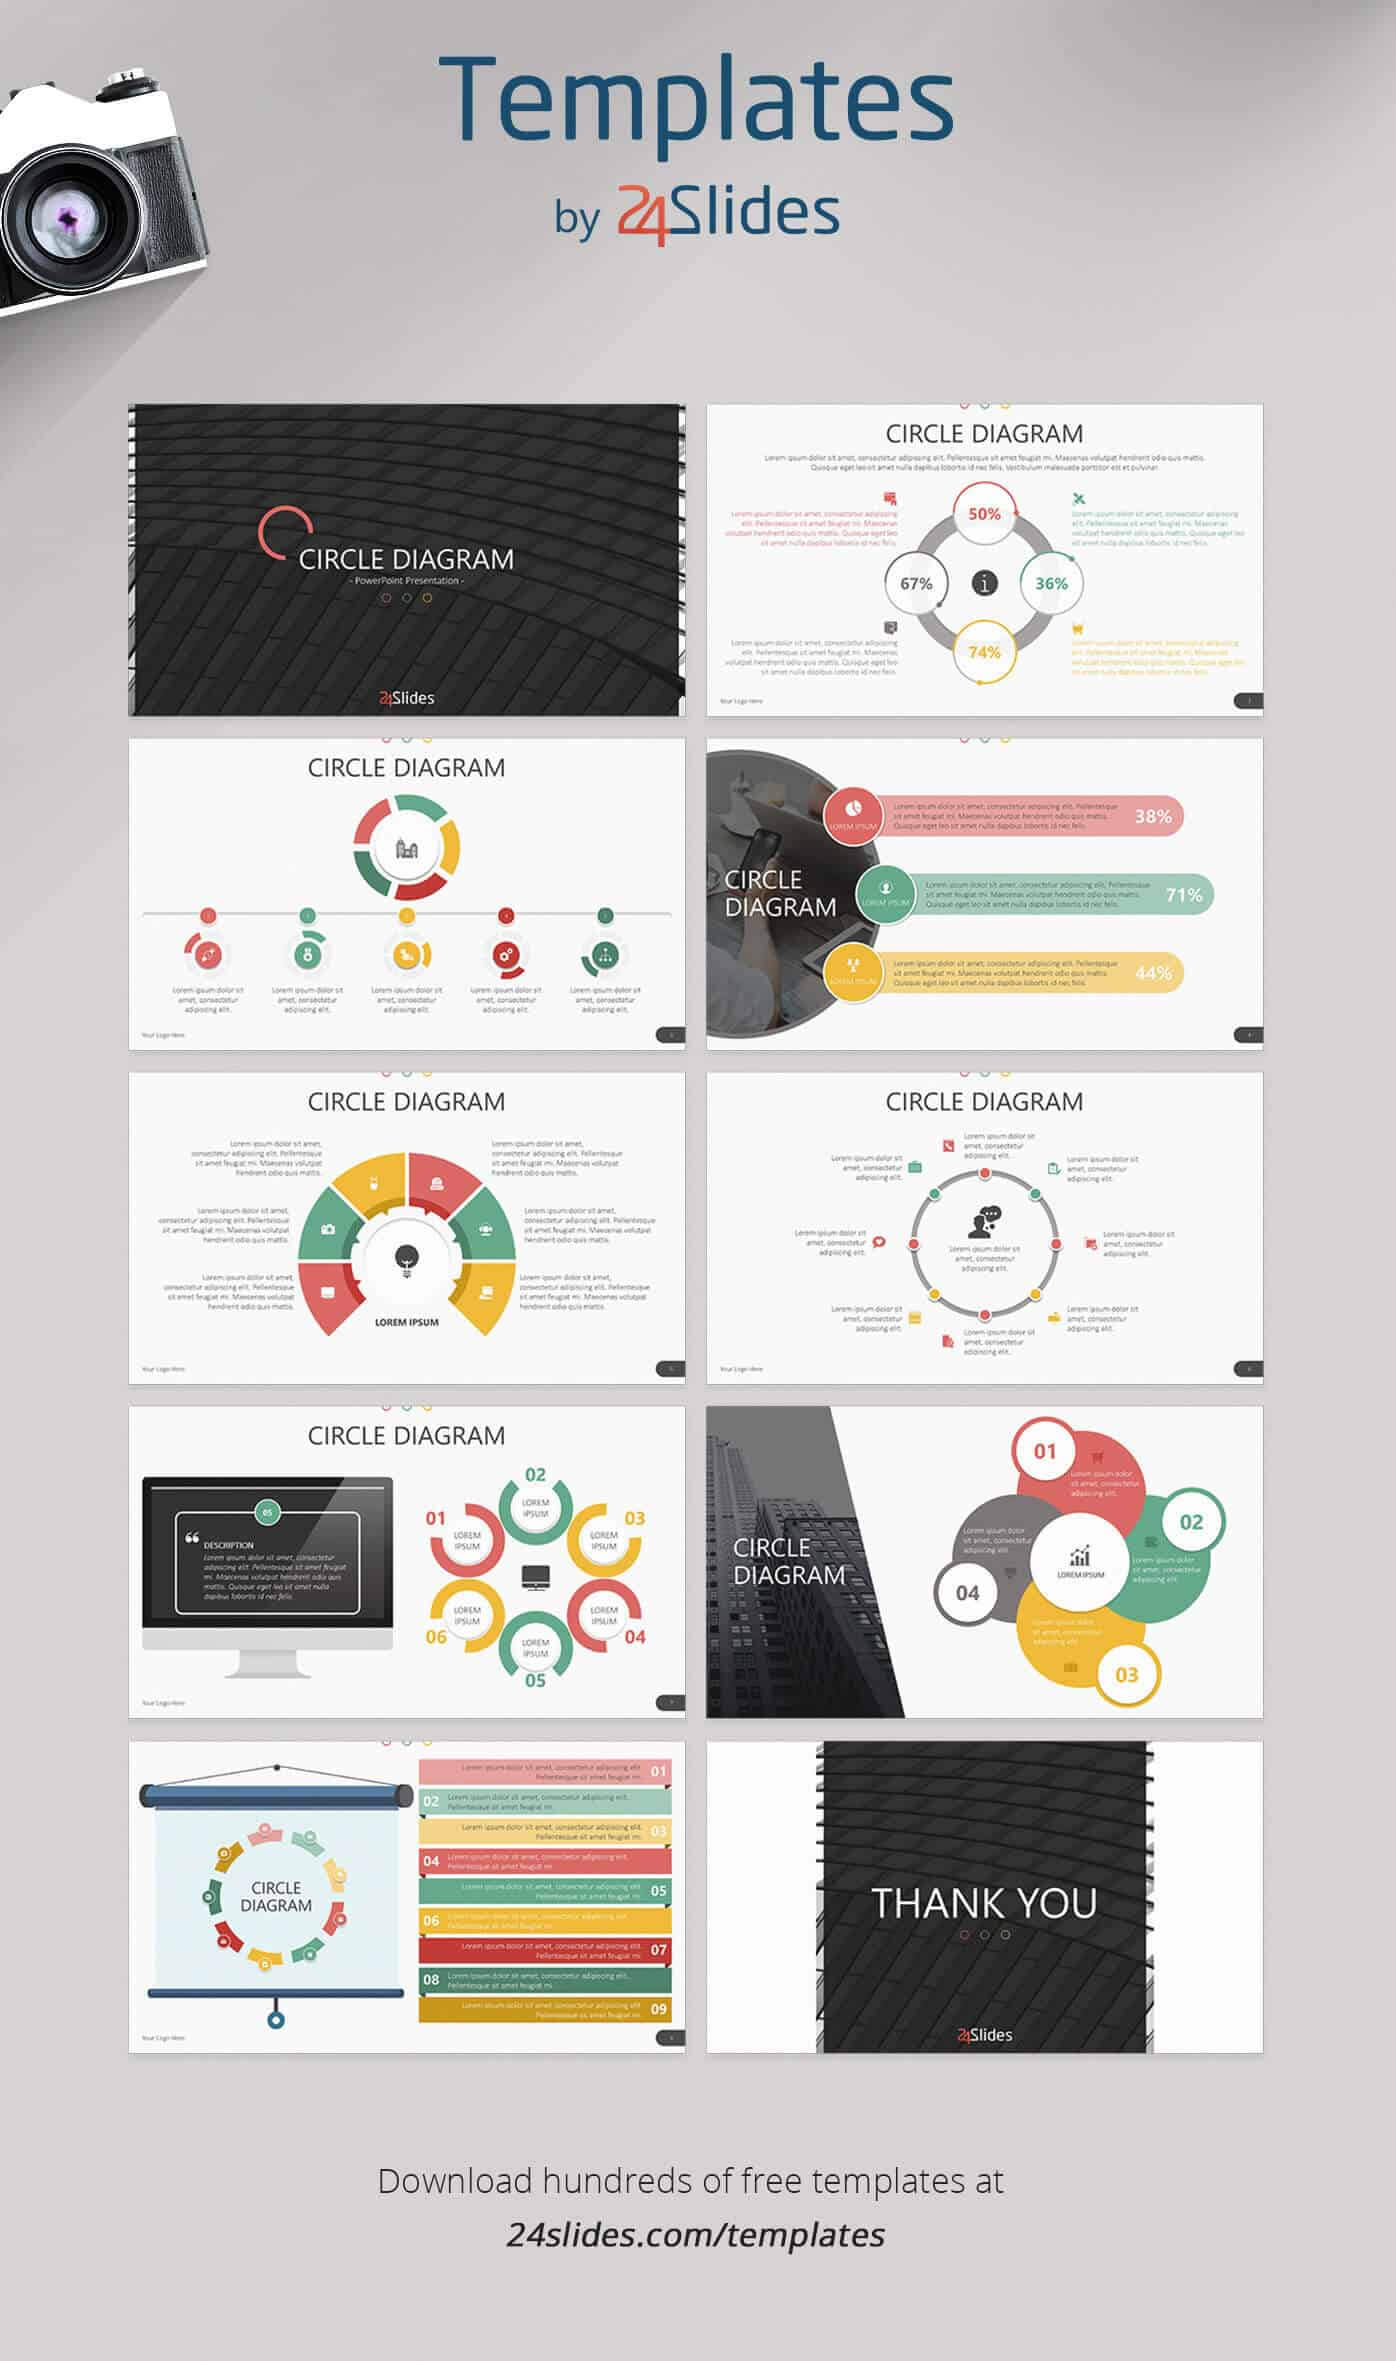 15 Fun And Colorful Free Powerpoint Templates | Present Better Within Fun Powerpoint Templates Free Download